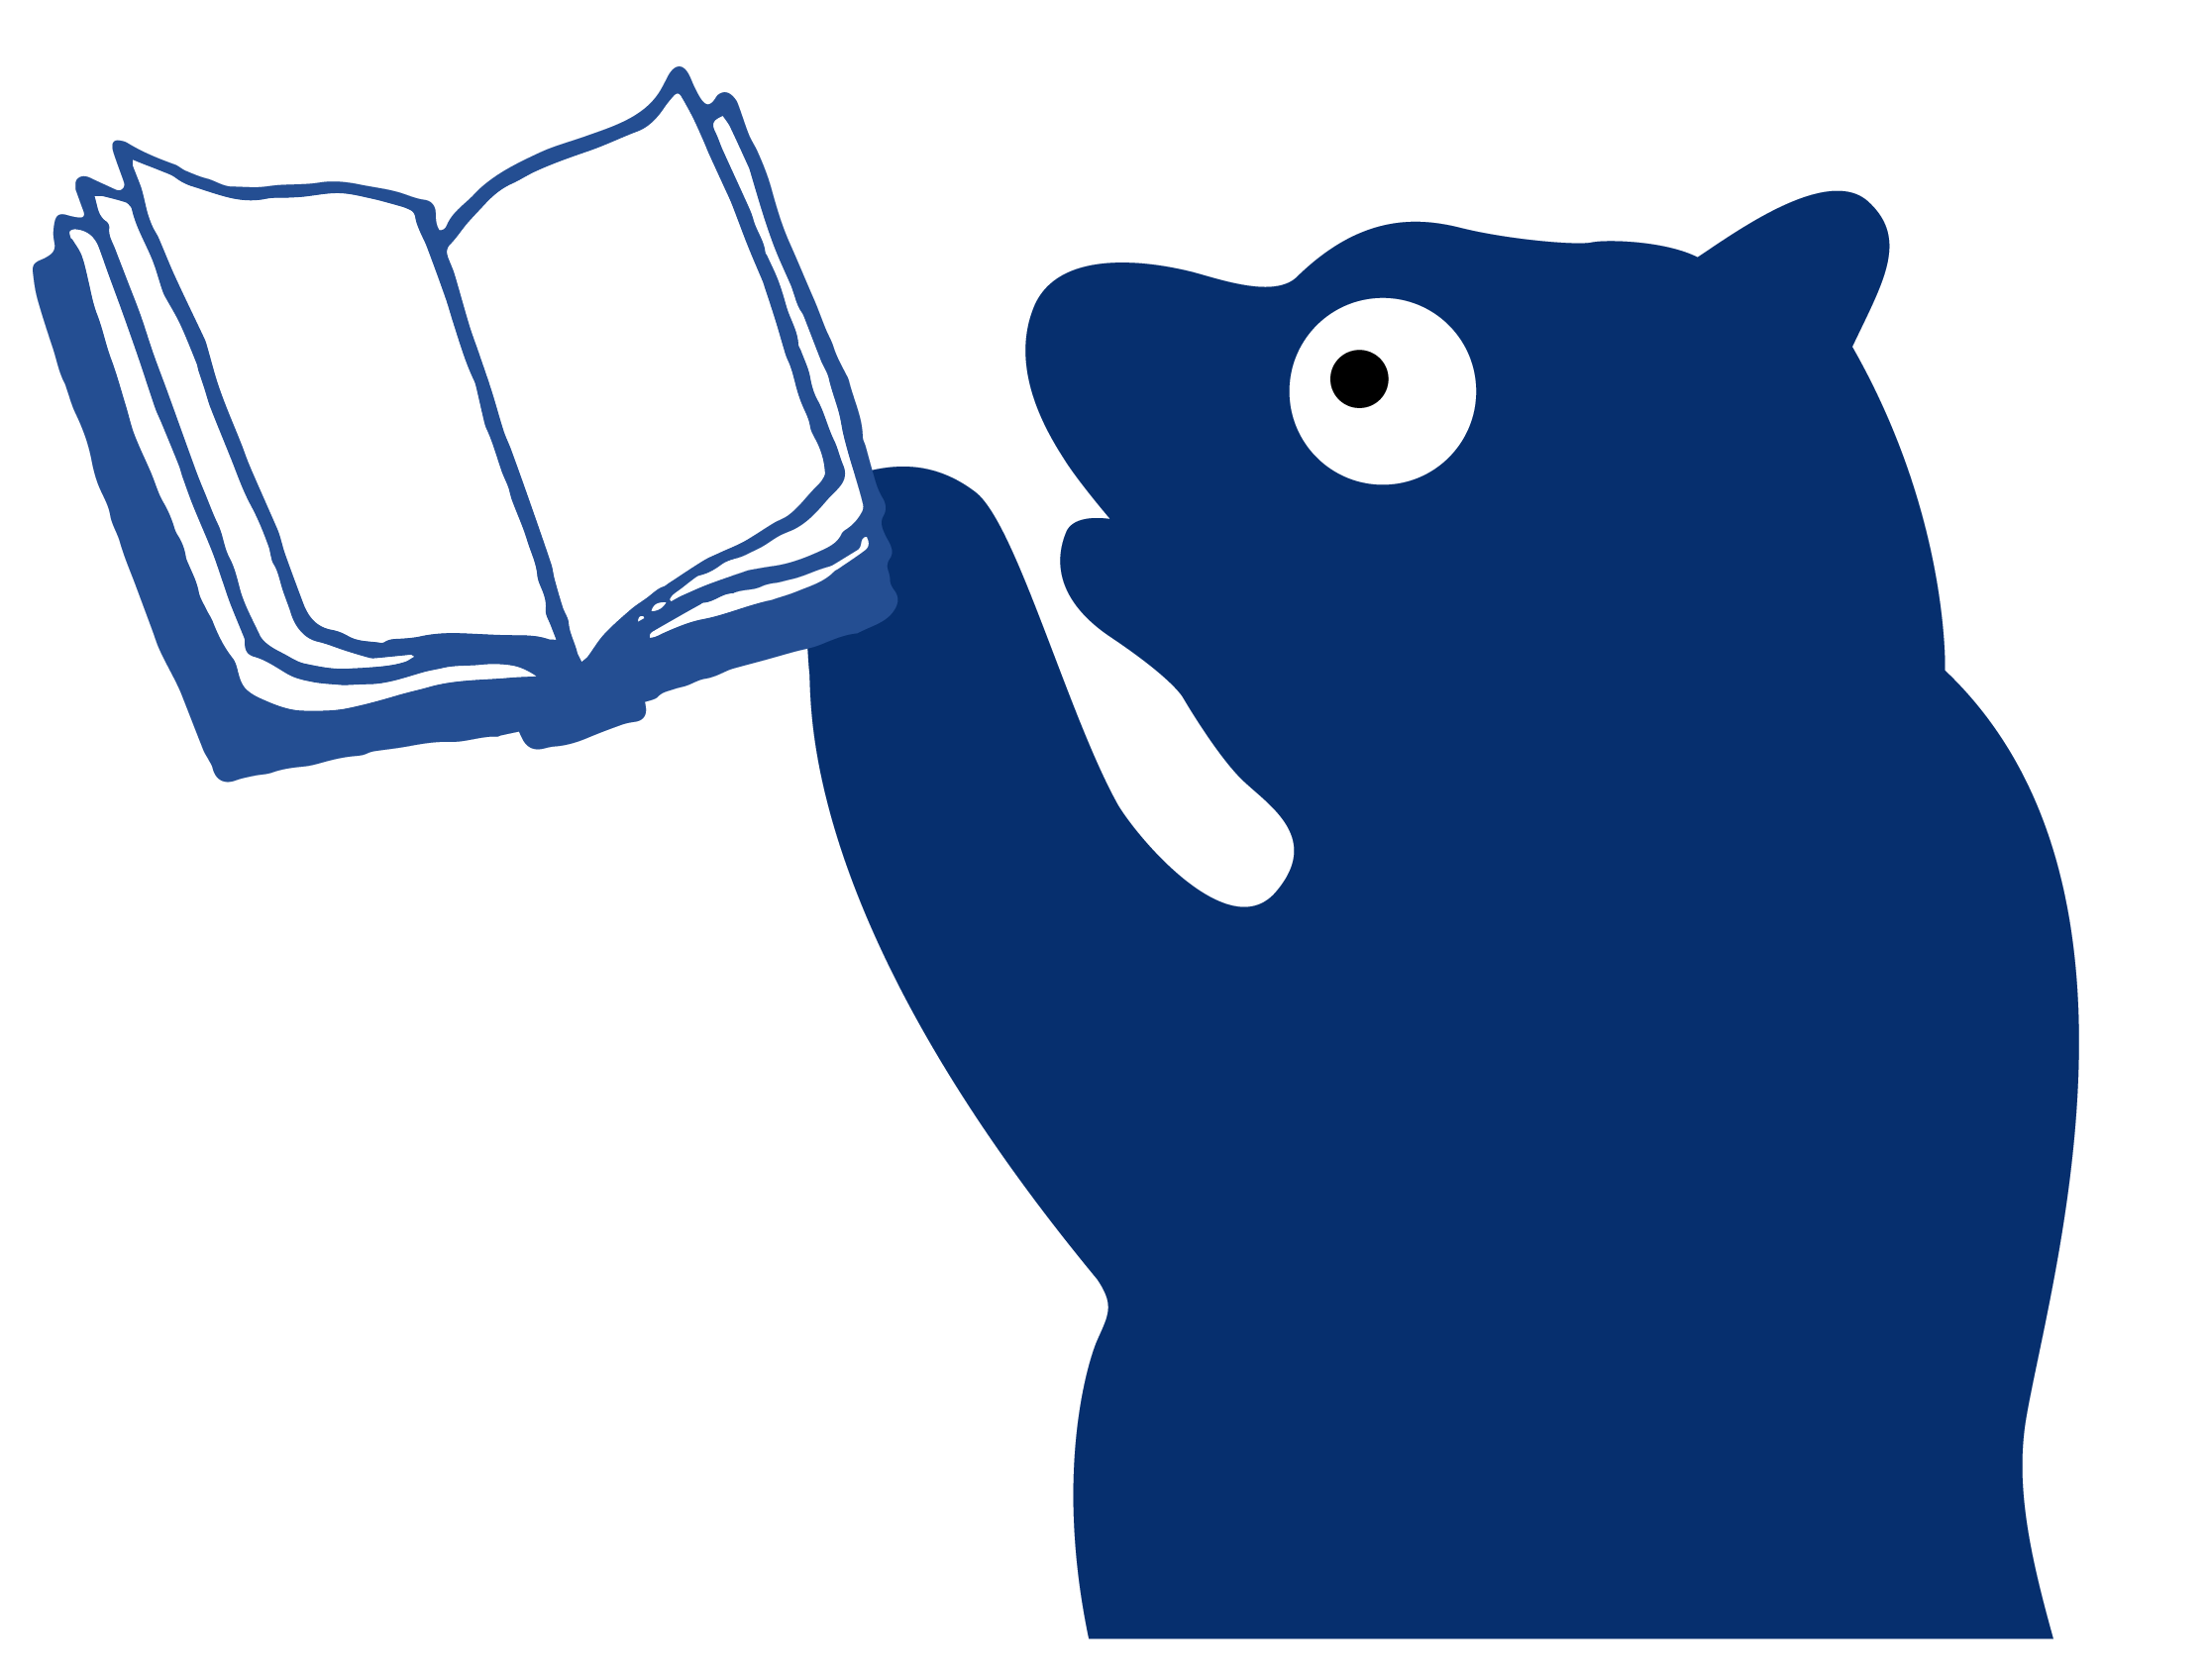 Millie the Bear holding a book